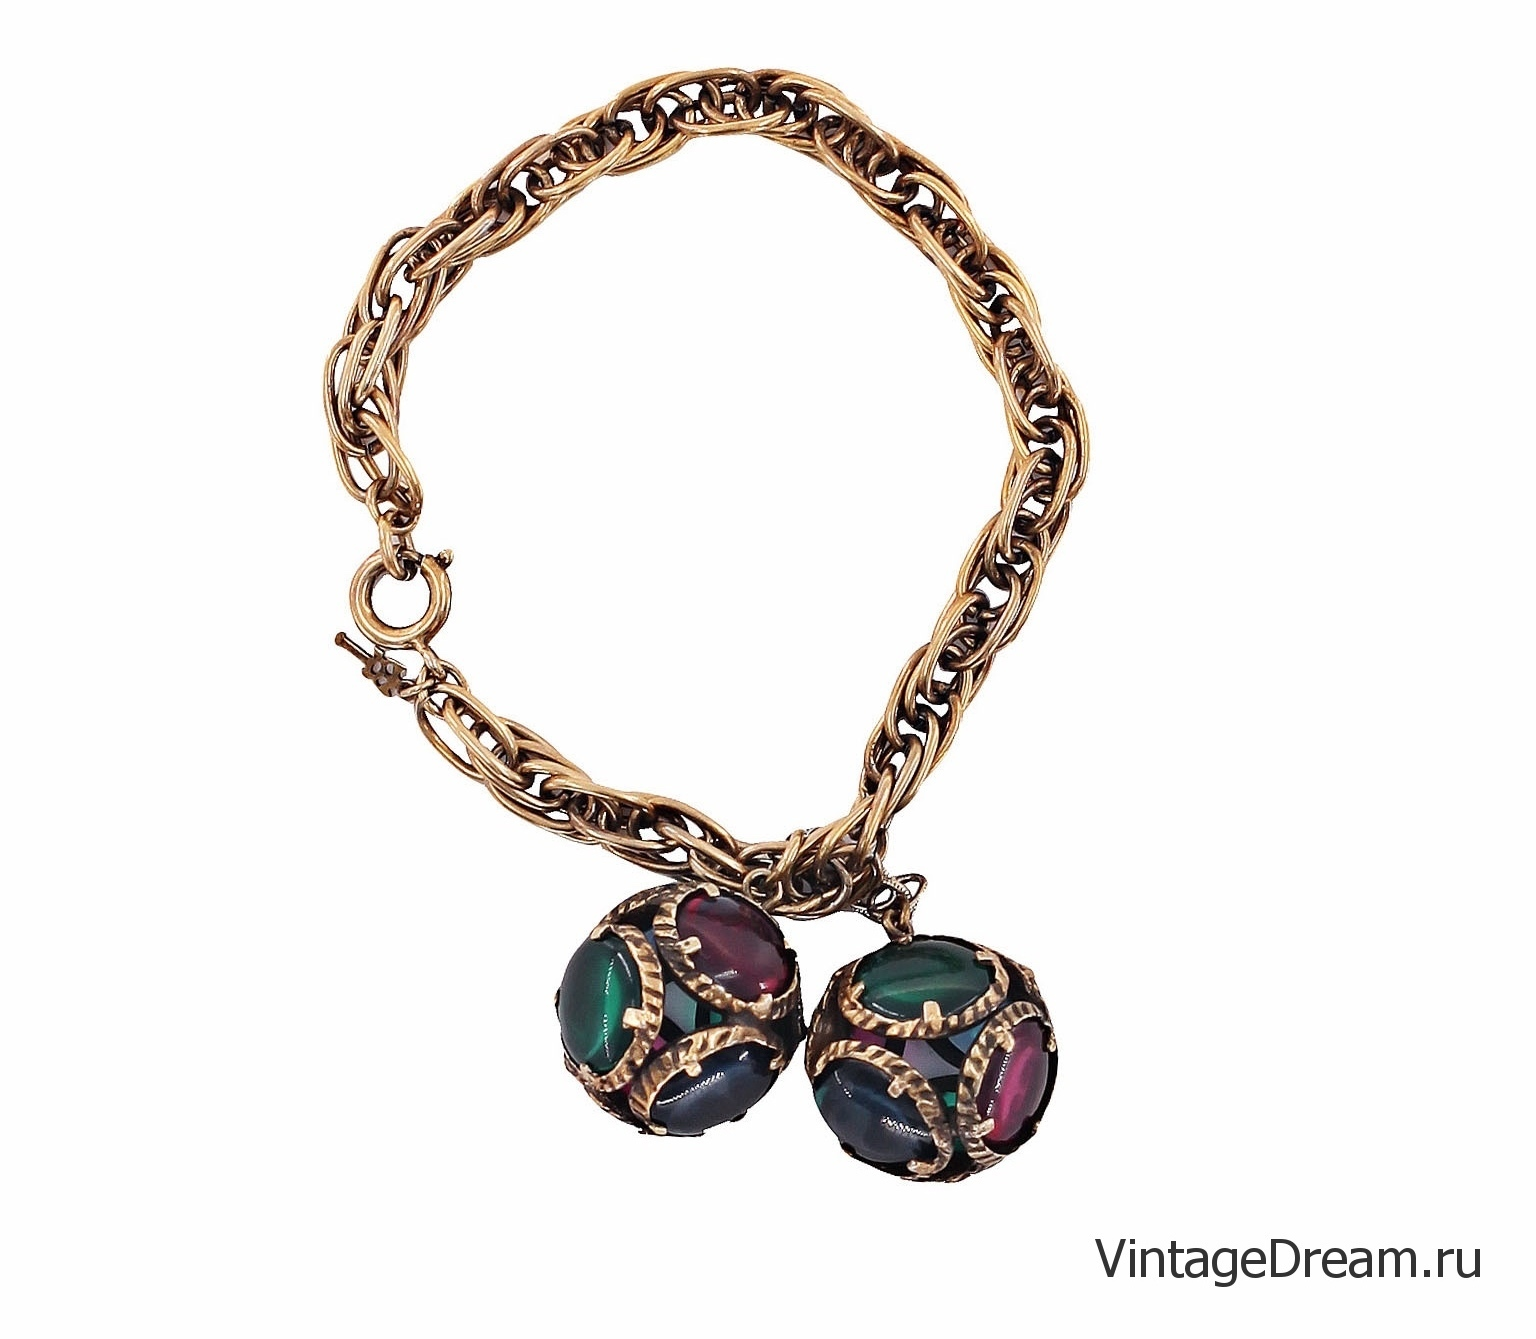 Trifari collectible bracelet from the 1964 Renaissance collection